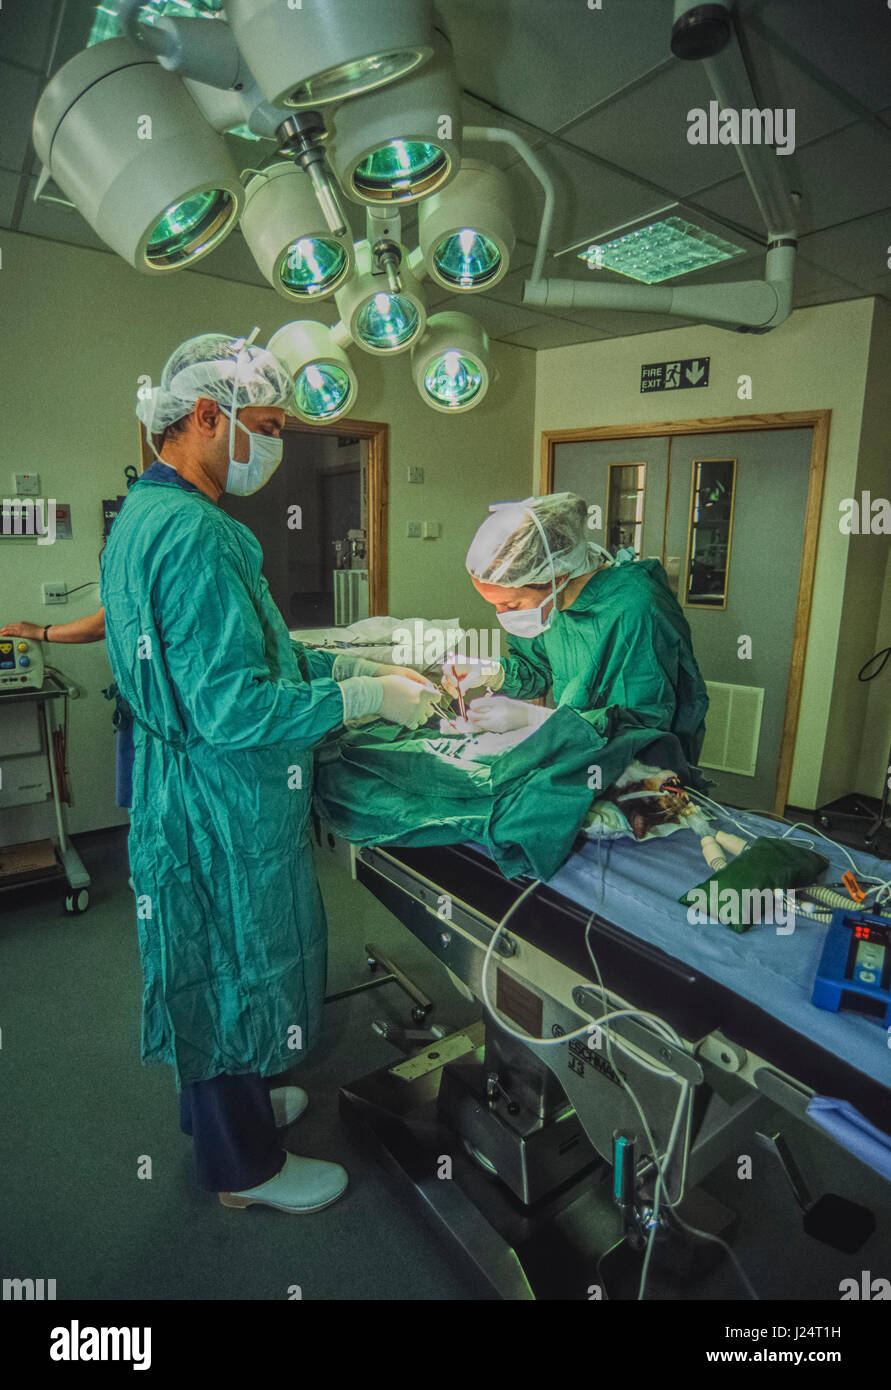 Veterinary surgeons perform an operation on a cat at the Blue Cross Animal Hospital, Victoria, London, United Kingdom - Stock Image